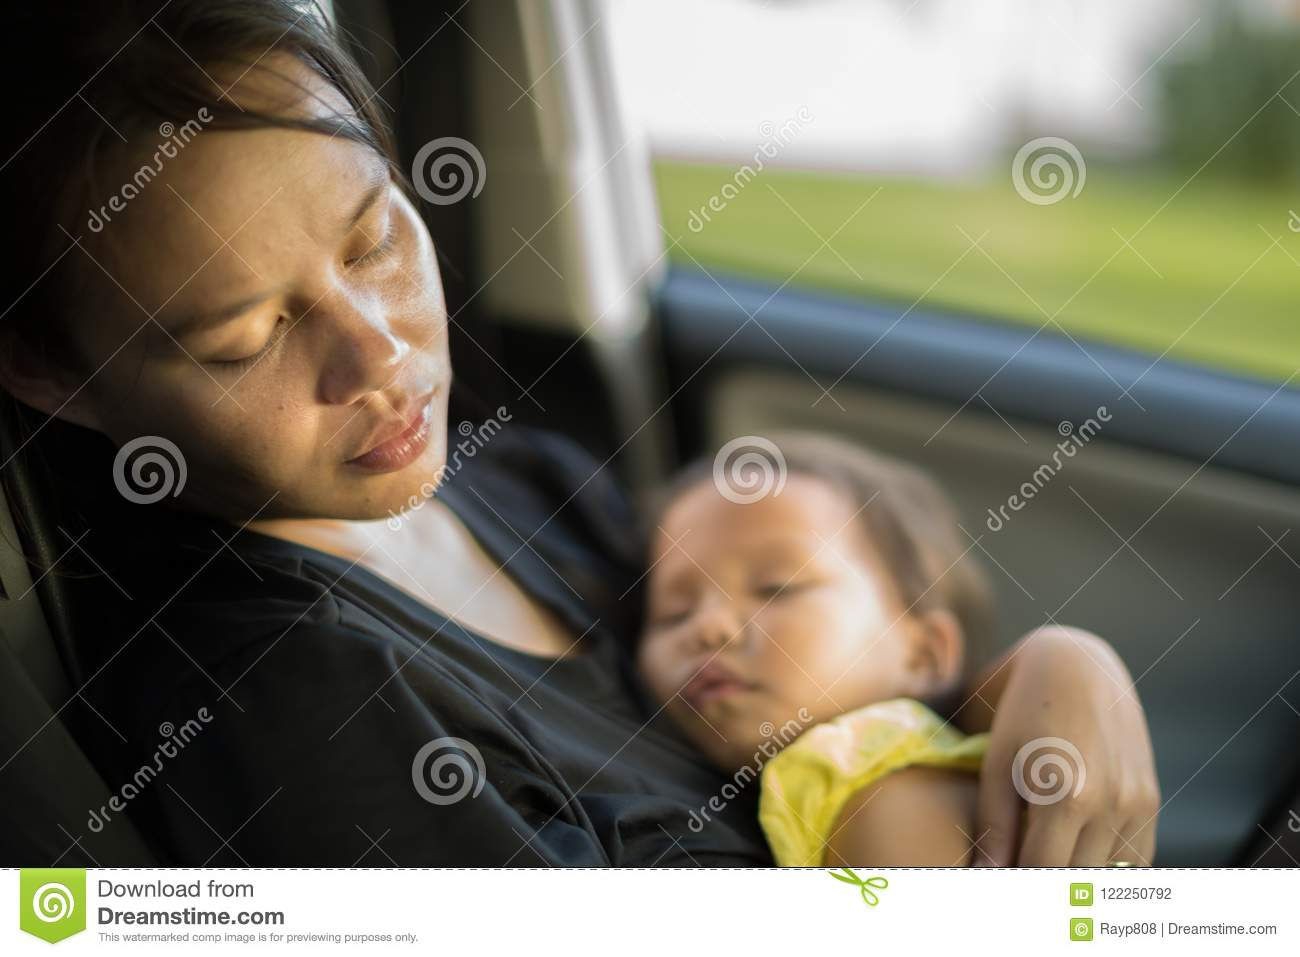 Tired and exhausted mother taking care of her baby. Postpardum depression.